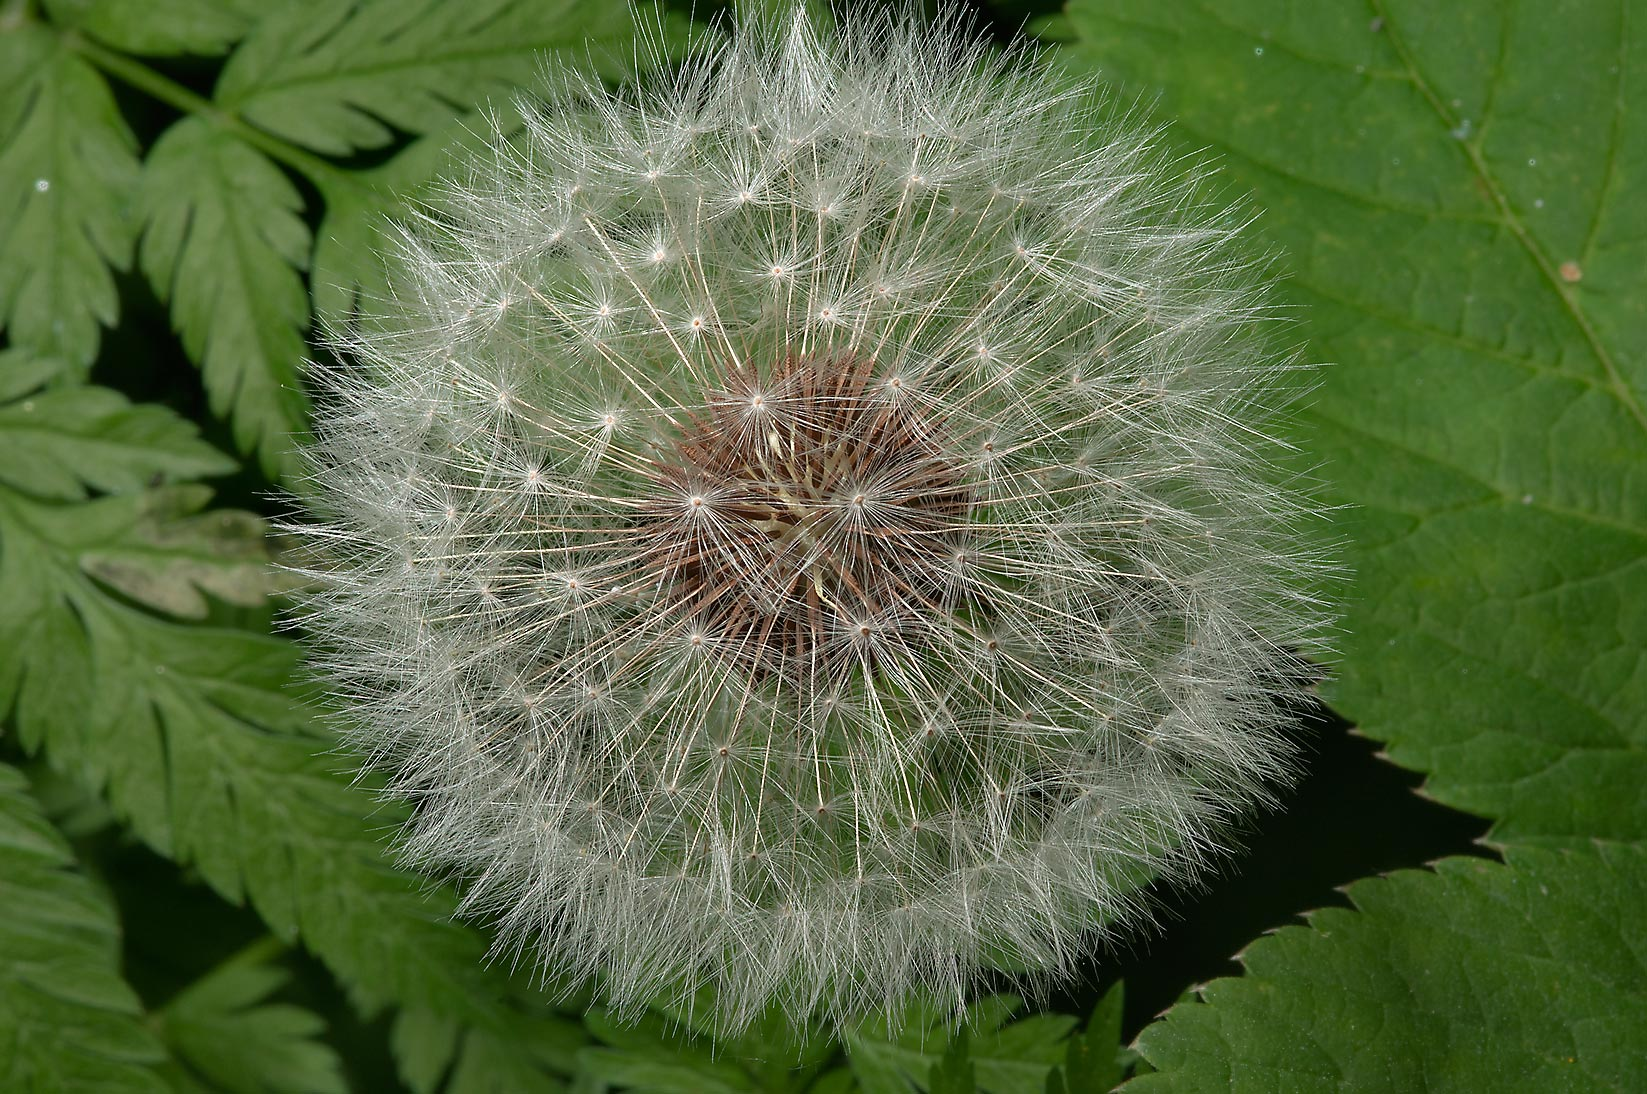 Globular seed head of common dandelion (Taraxacum...Institute. St.Petersburg, Russia